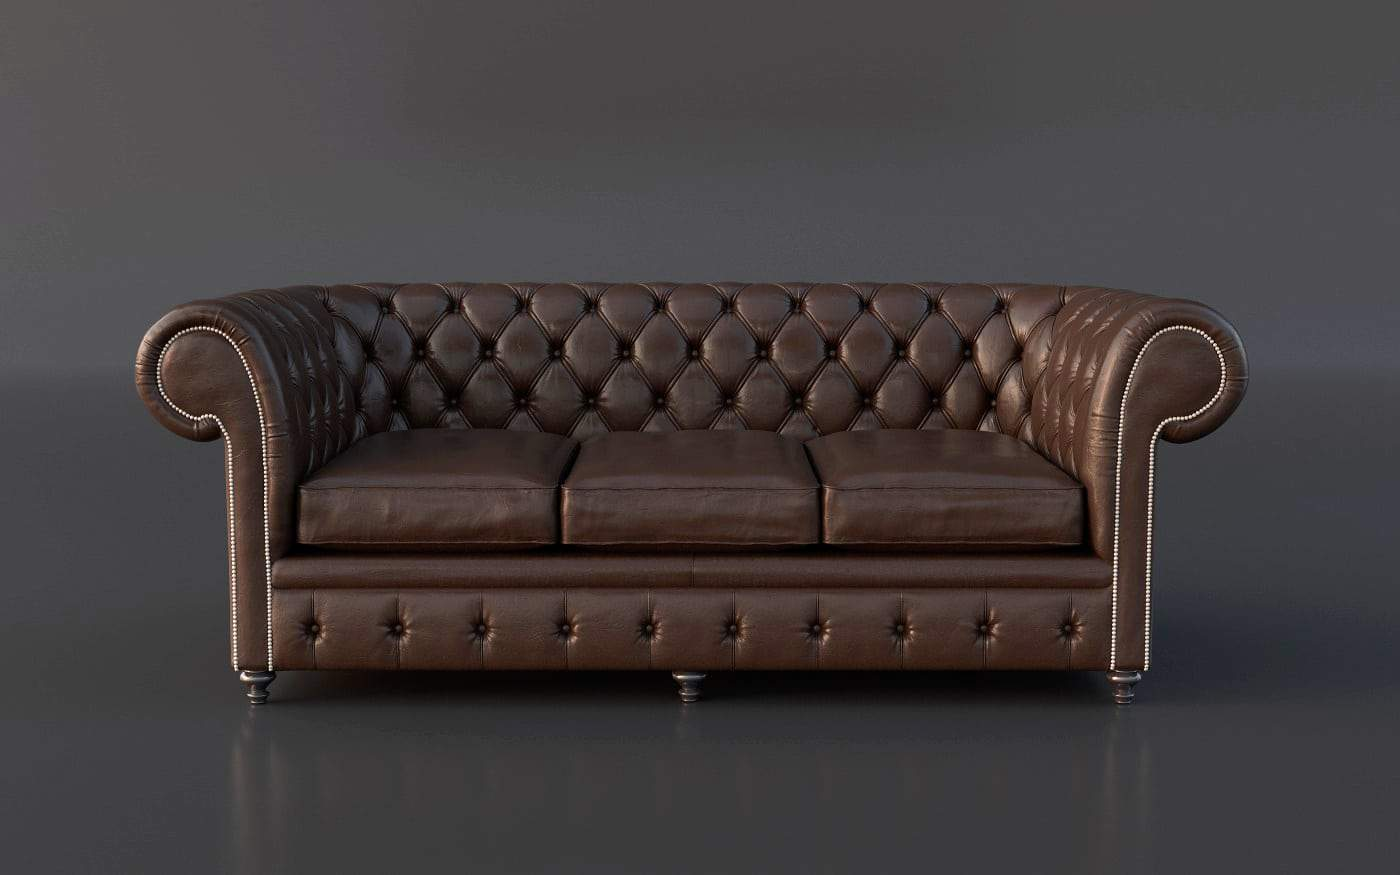 Chesterfield couch 3d model gonzalo briceno tugues for Mobel 3d download